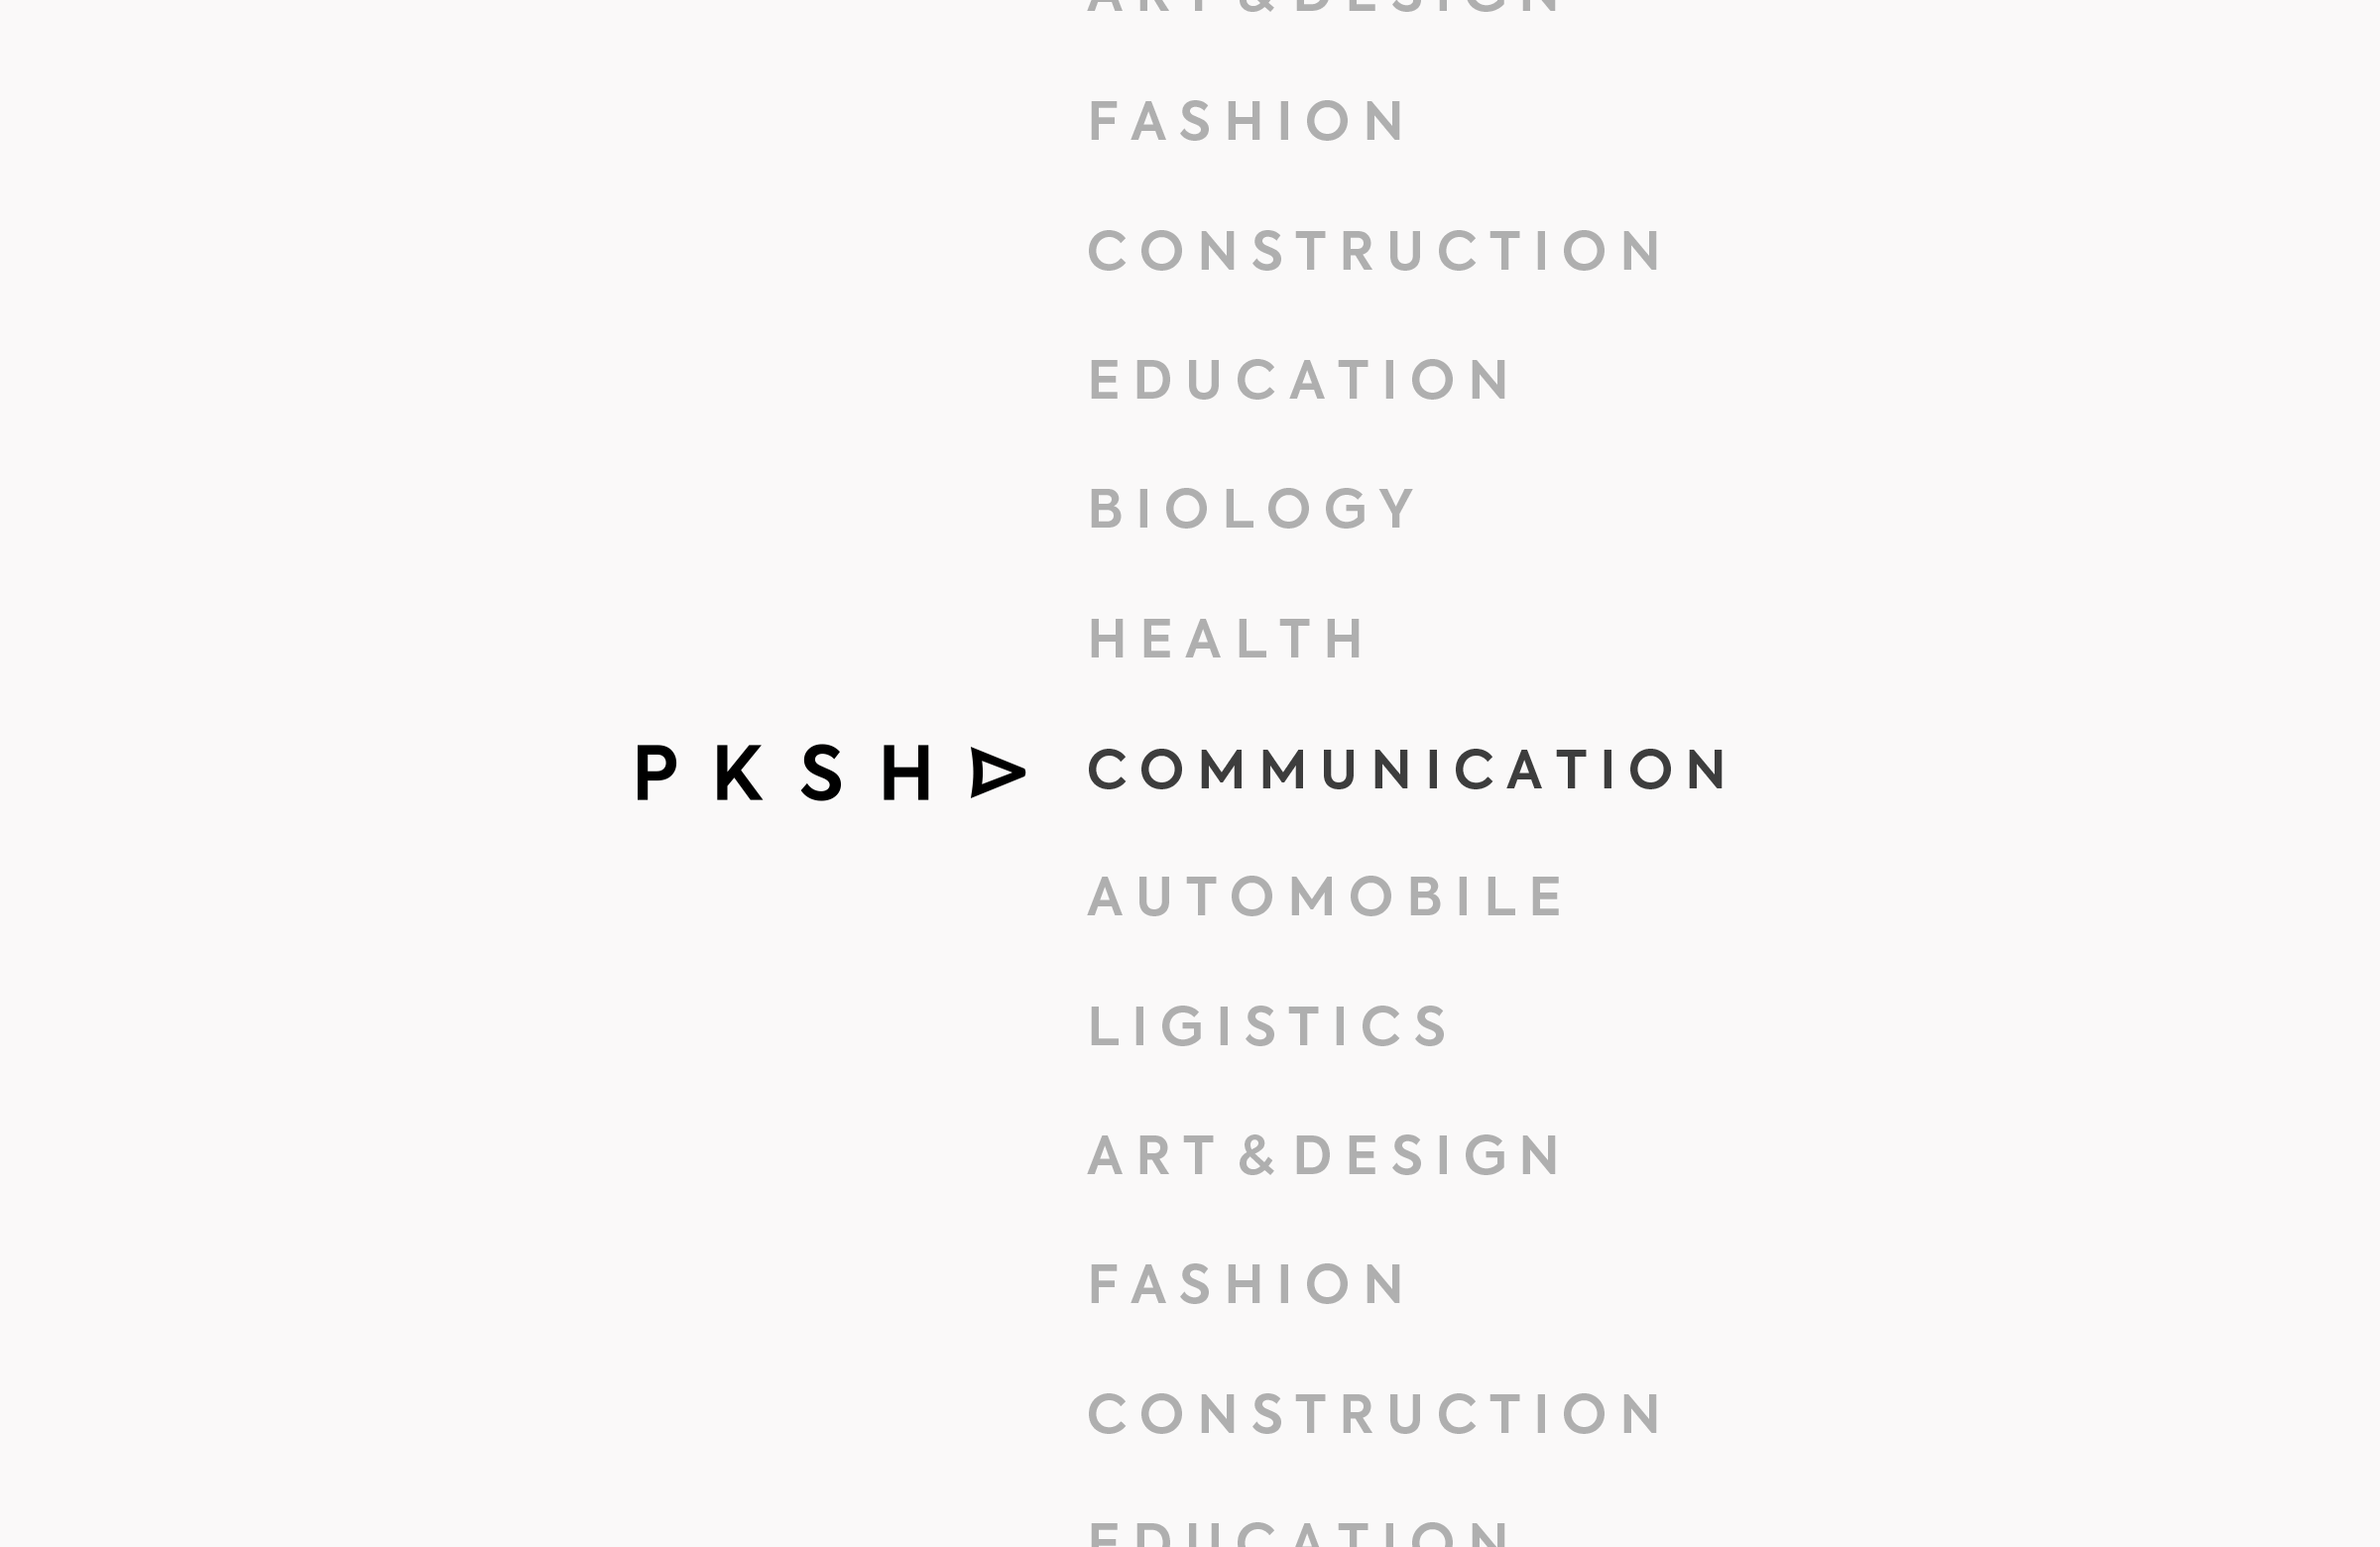 PKSHA Technology